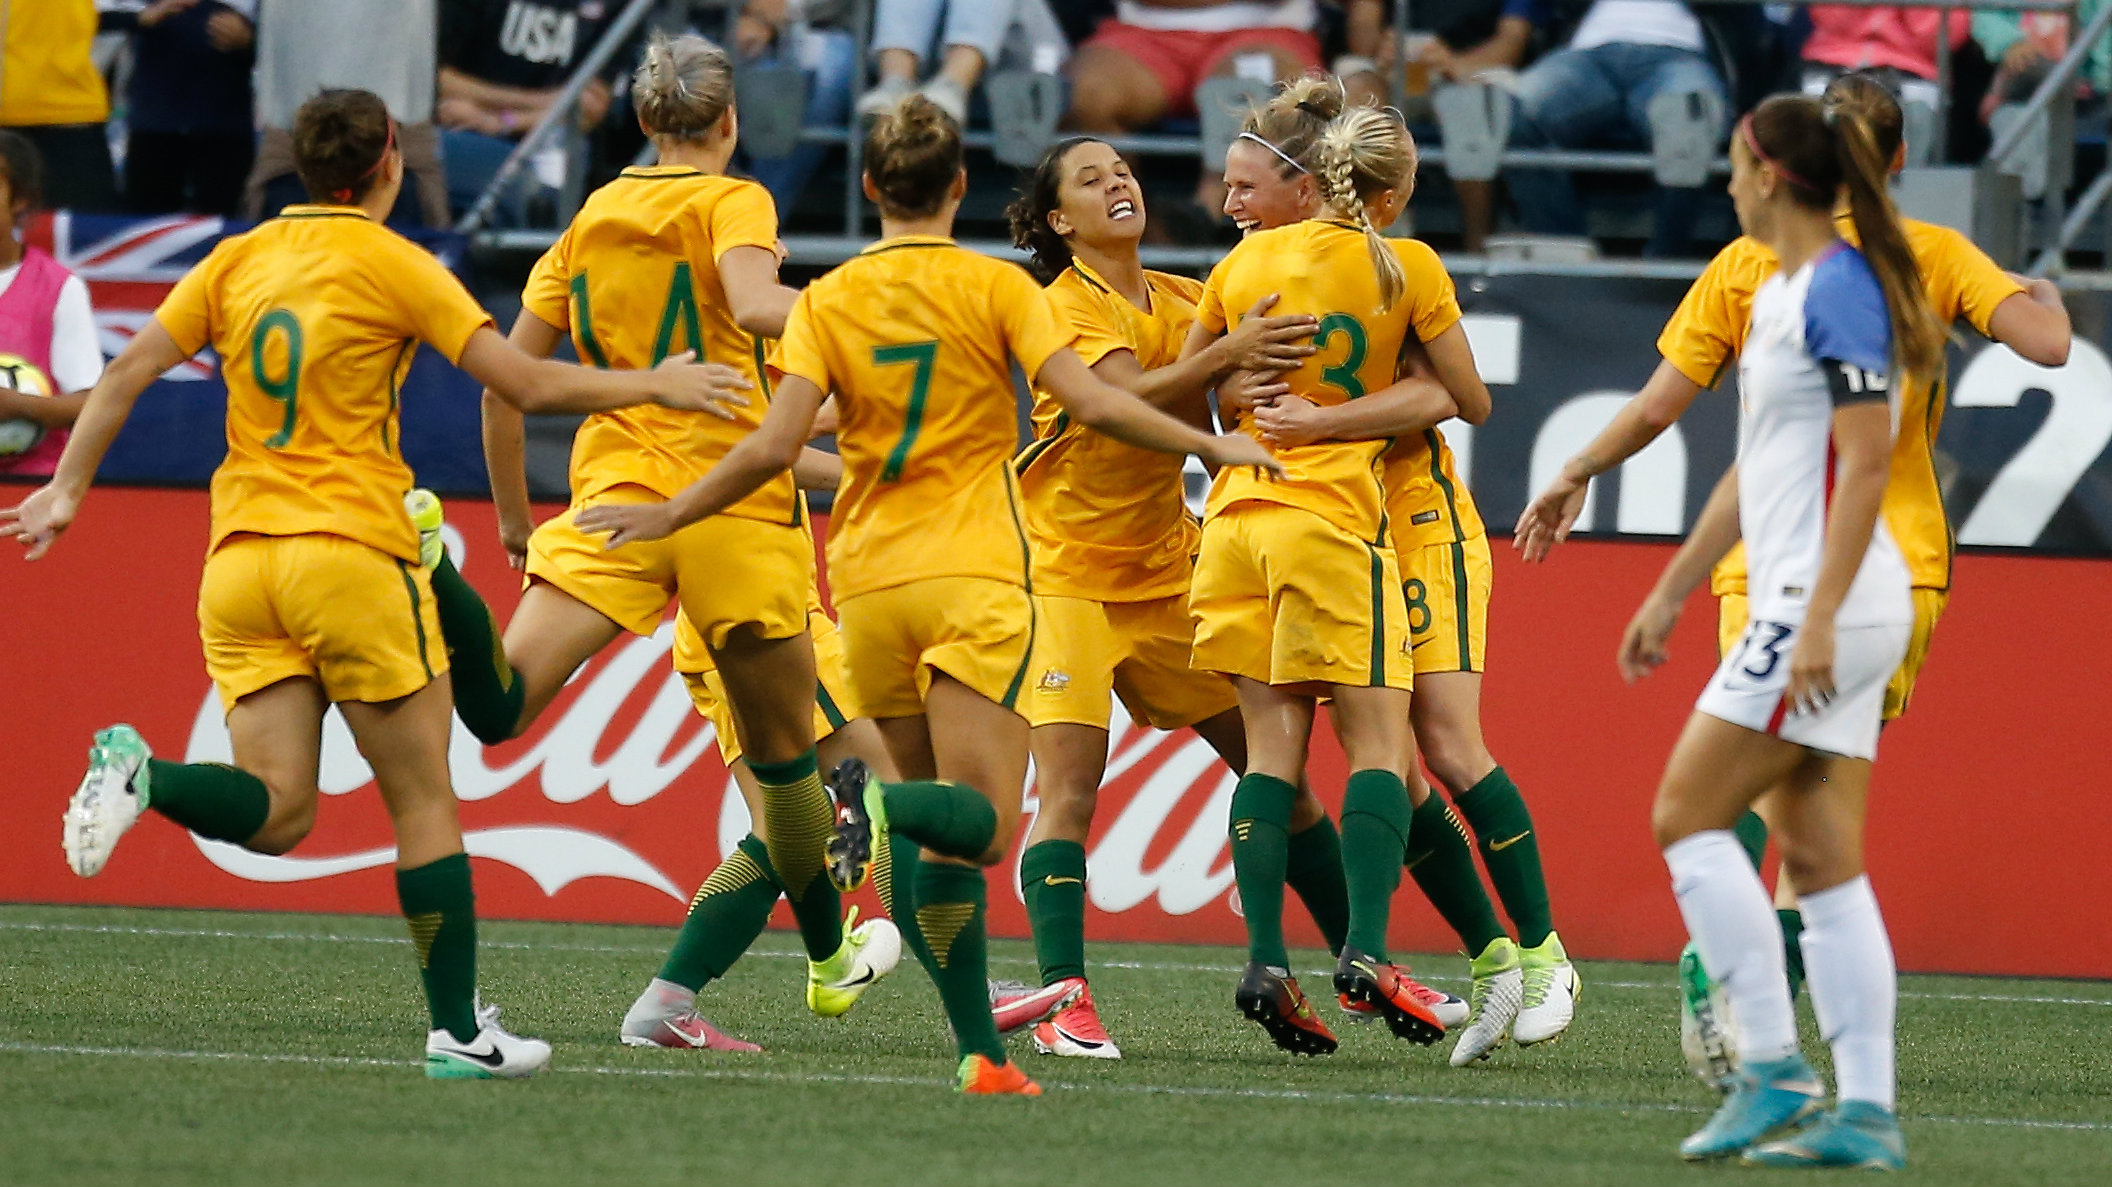 Westfield Matildas players celebrate Tameka Butt's goal in their win over the USA last month.